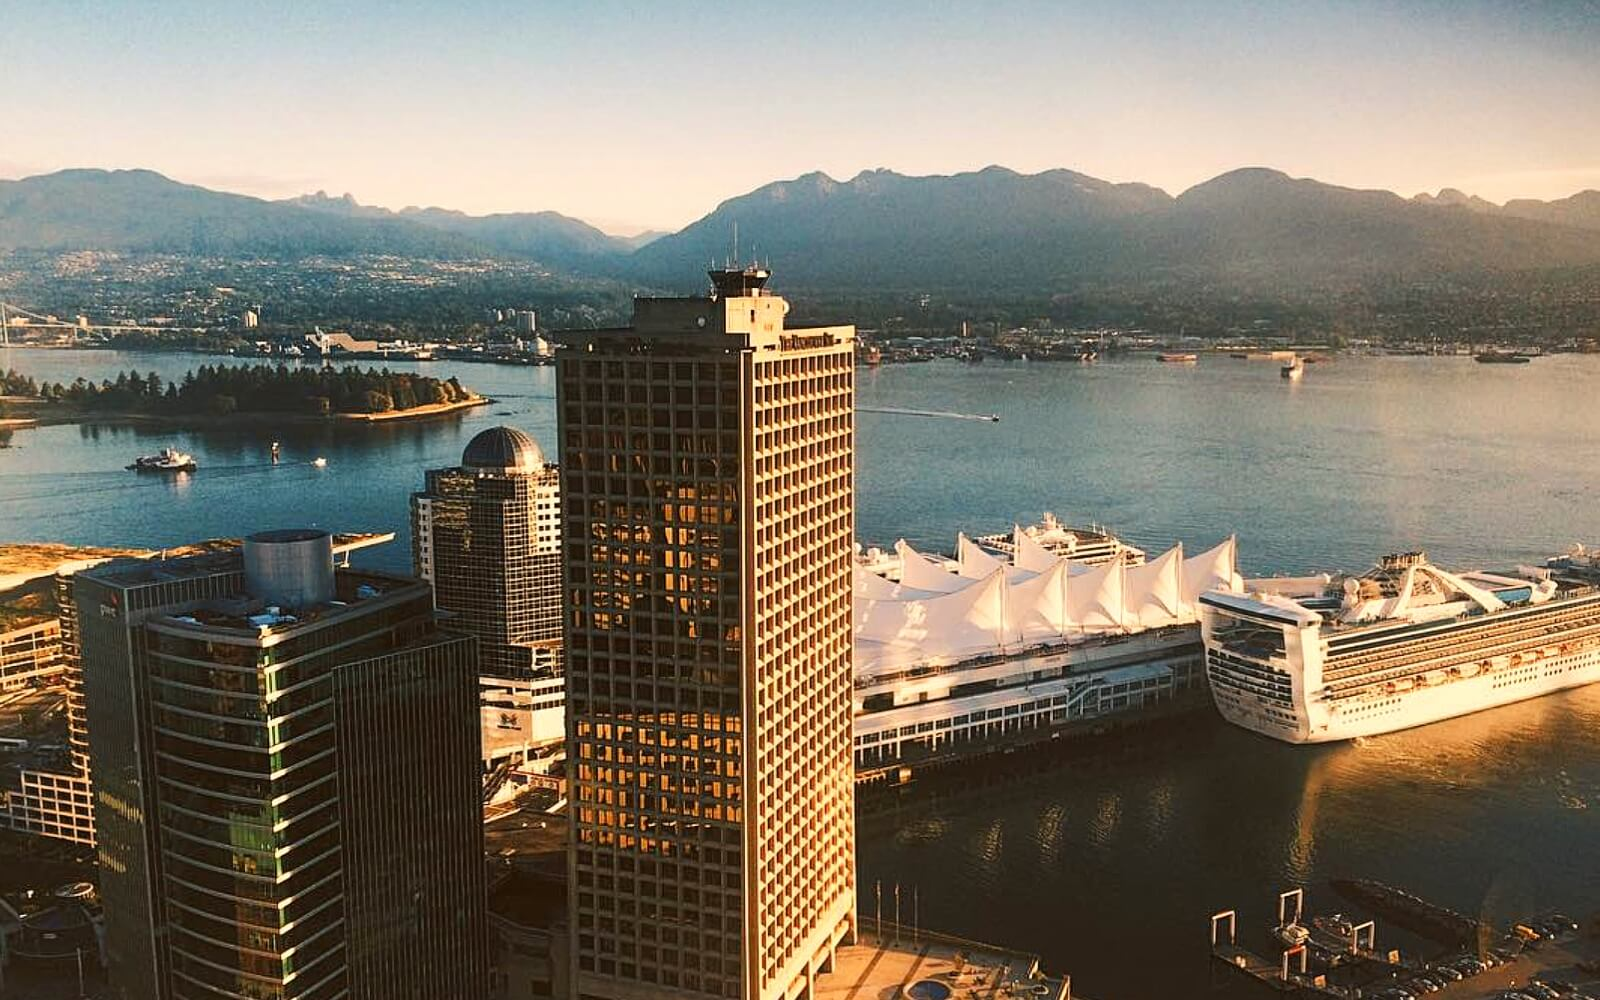 The view of Burrard Inlet from Vancouver Lookout